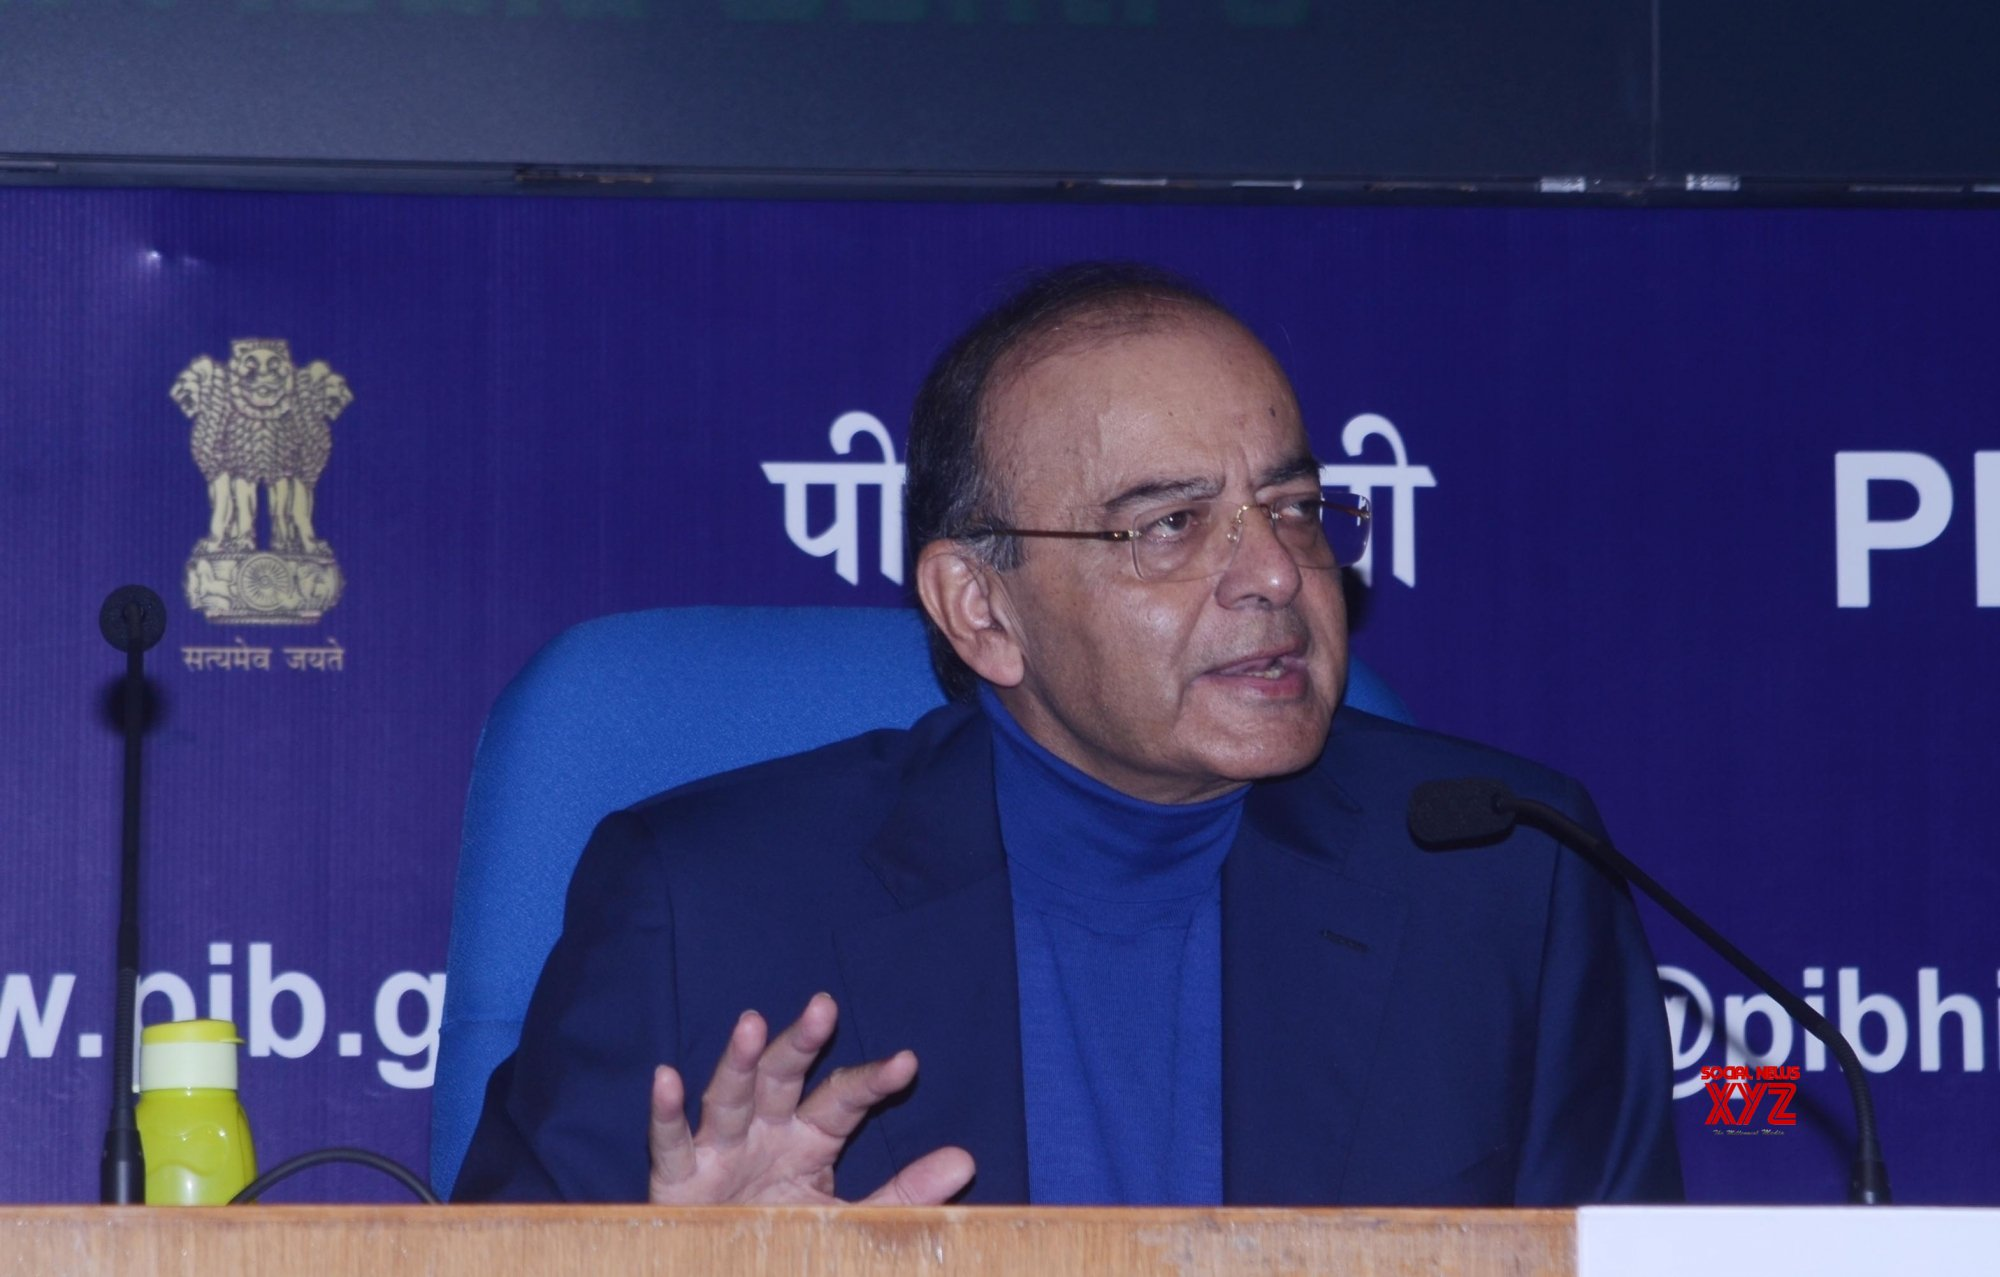 Political rhetoric to be critical for Indian economy: Jaitley